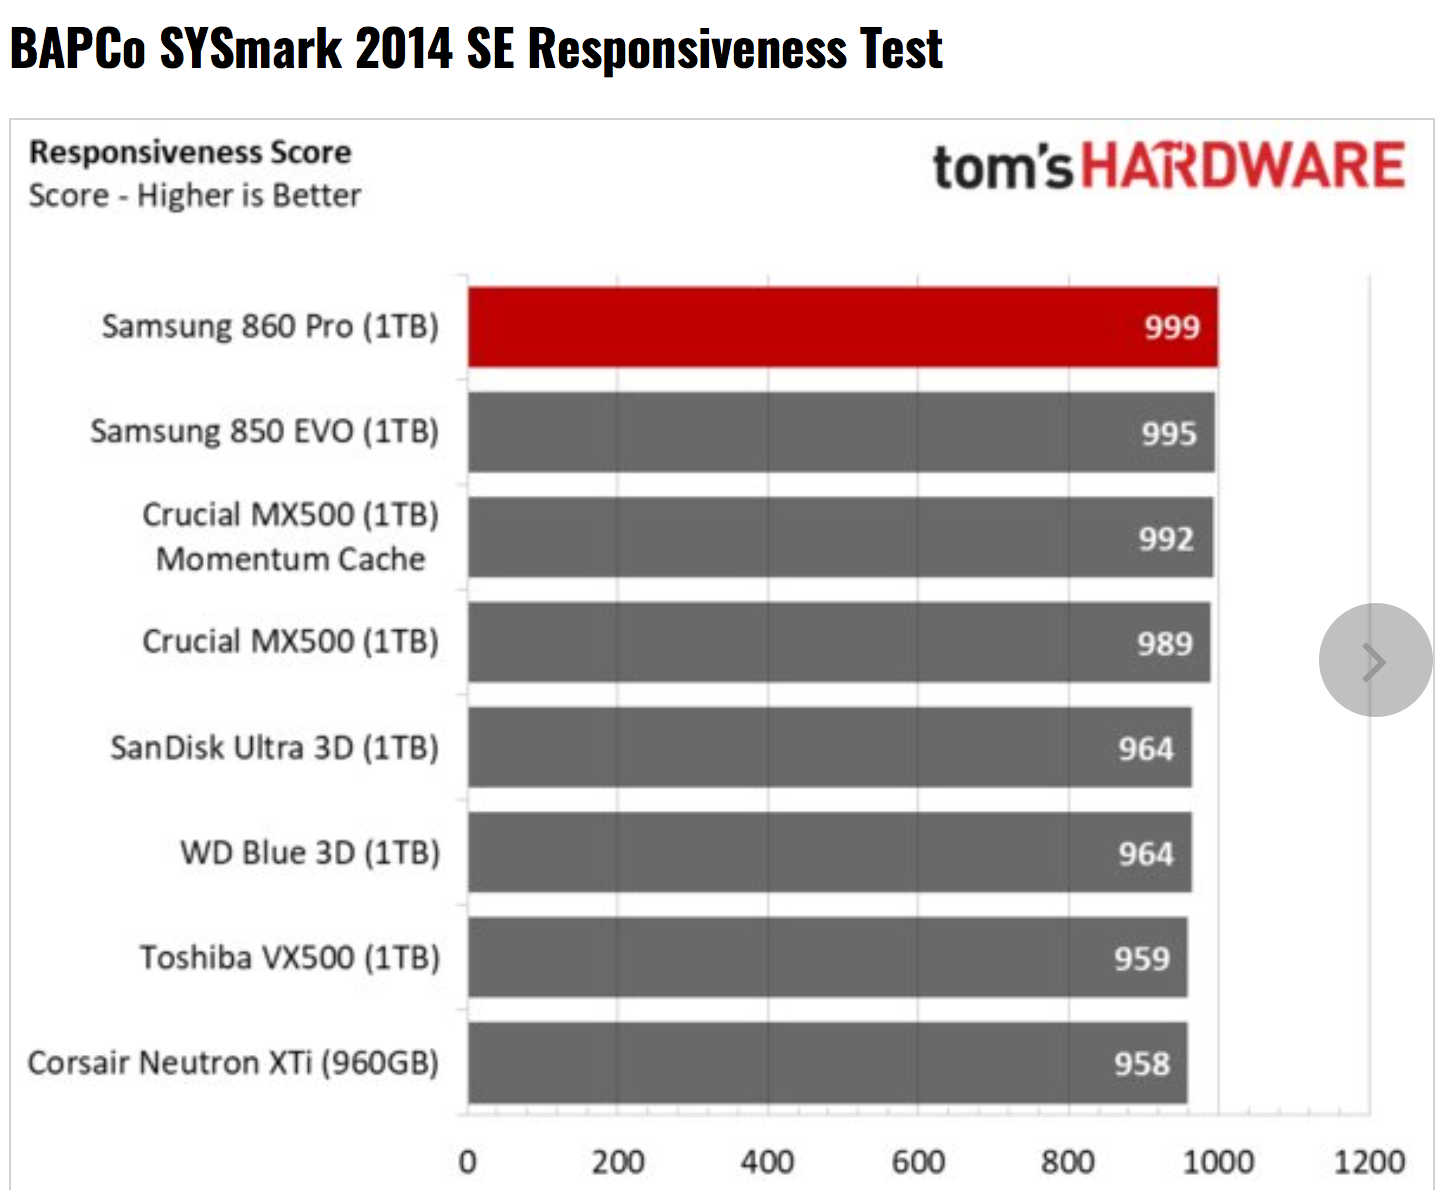 Tom's Hardware – Samsung 860 Pro SSD Review using BAPCo's SYSmark 2014 SE Responsiveness + Energy Benchmark Test